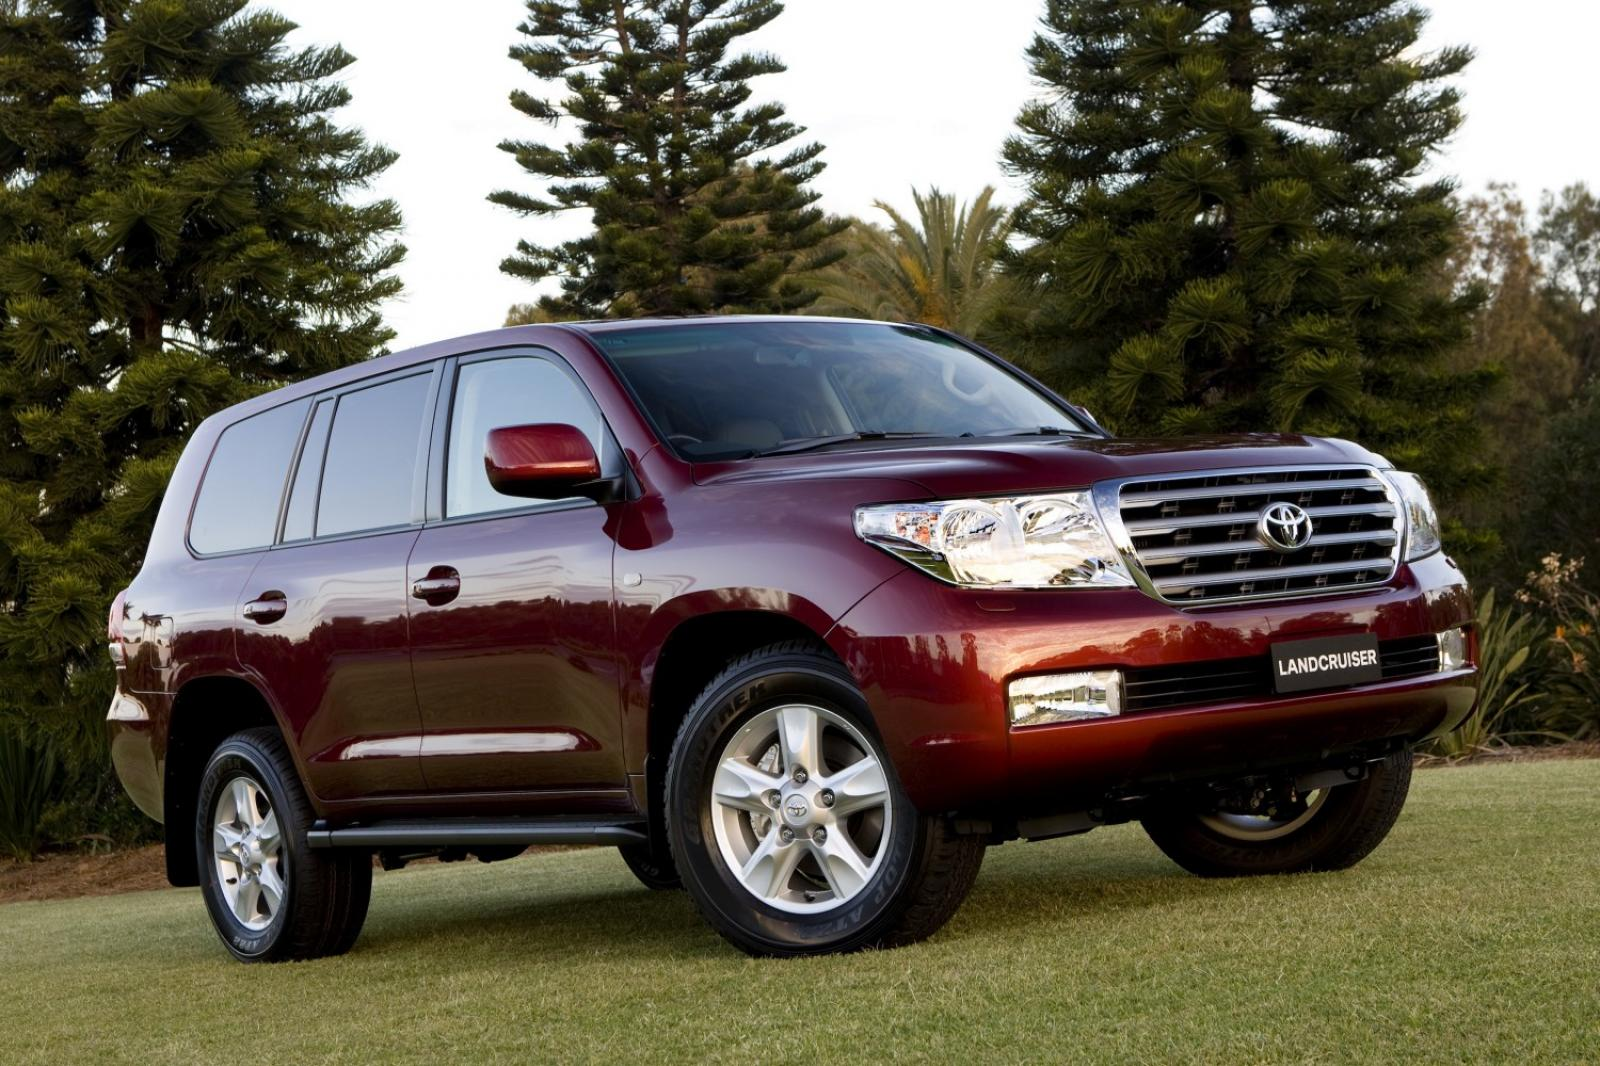 2010 toyota land cruiser information and photos zombiedrive. Black Bedroom Furniture Sets. Home Design Ideas